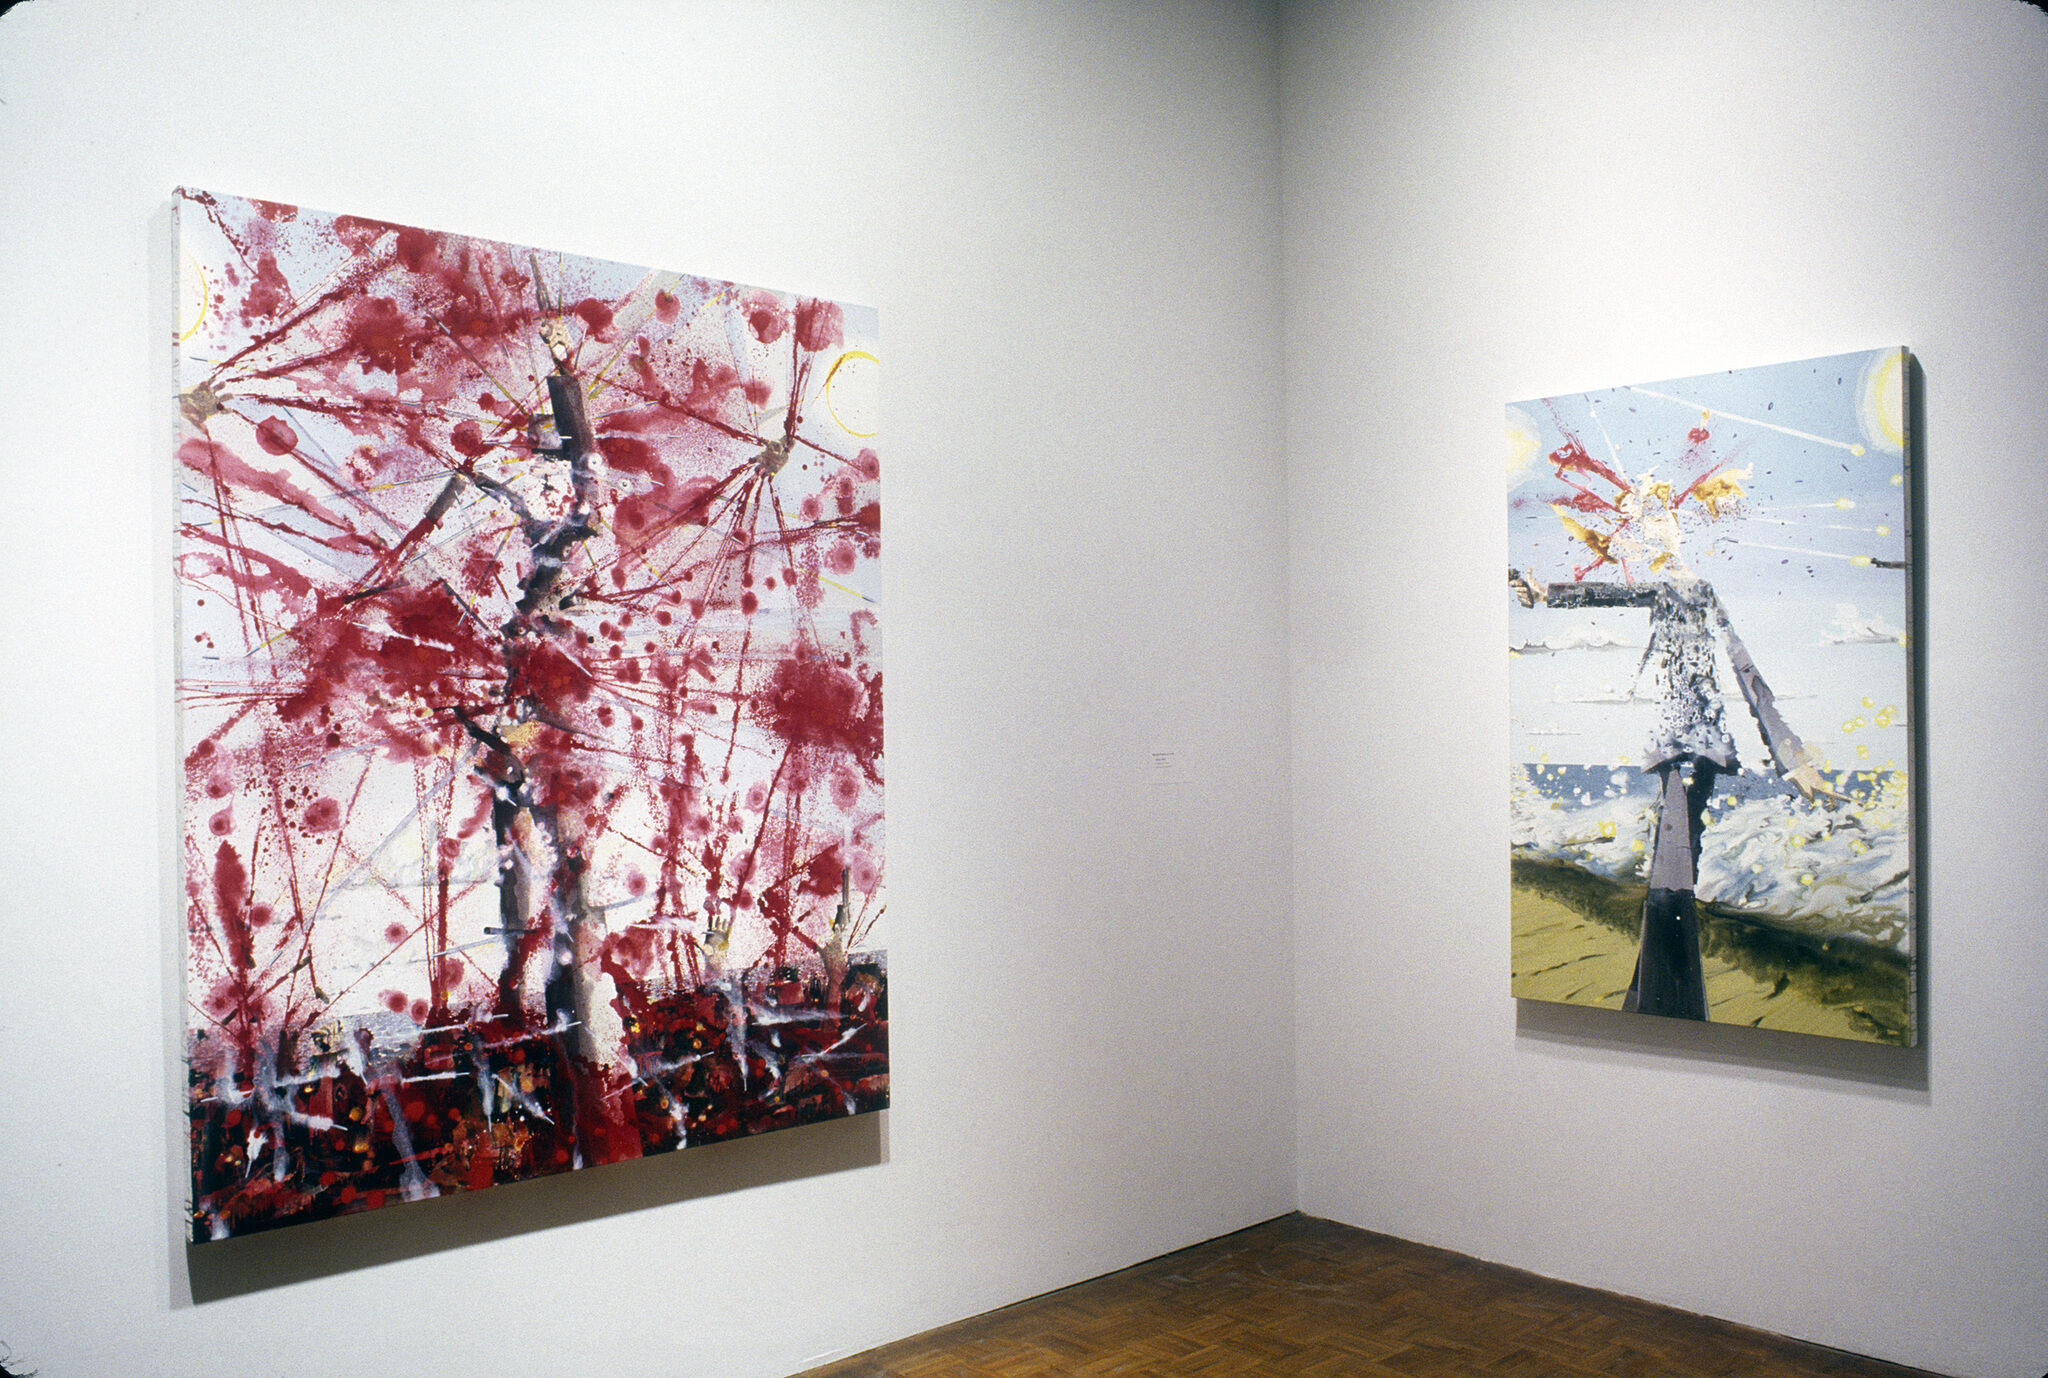 An abstract painting filled with red splatters, along with an abstract painting of a headless figure.